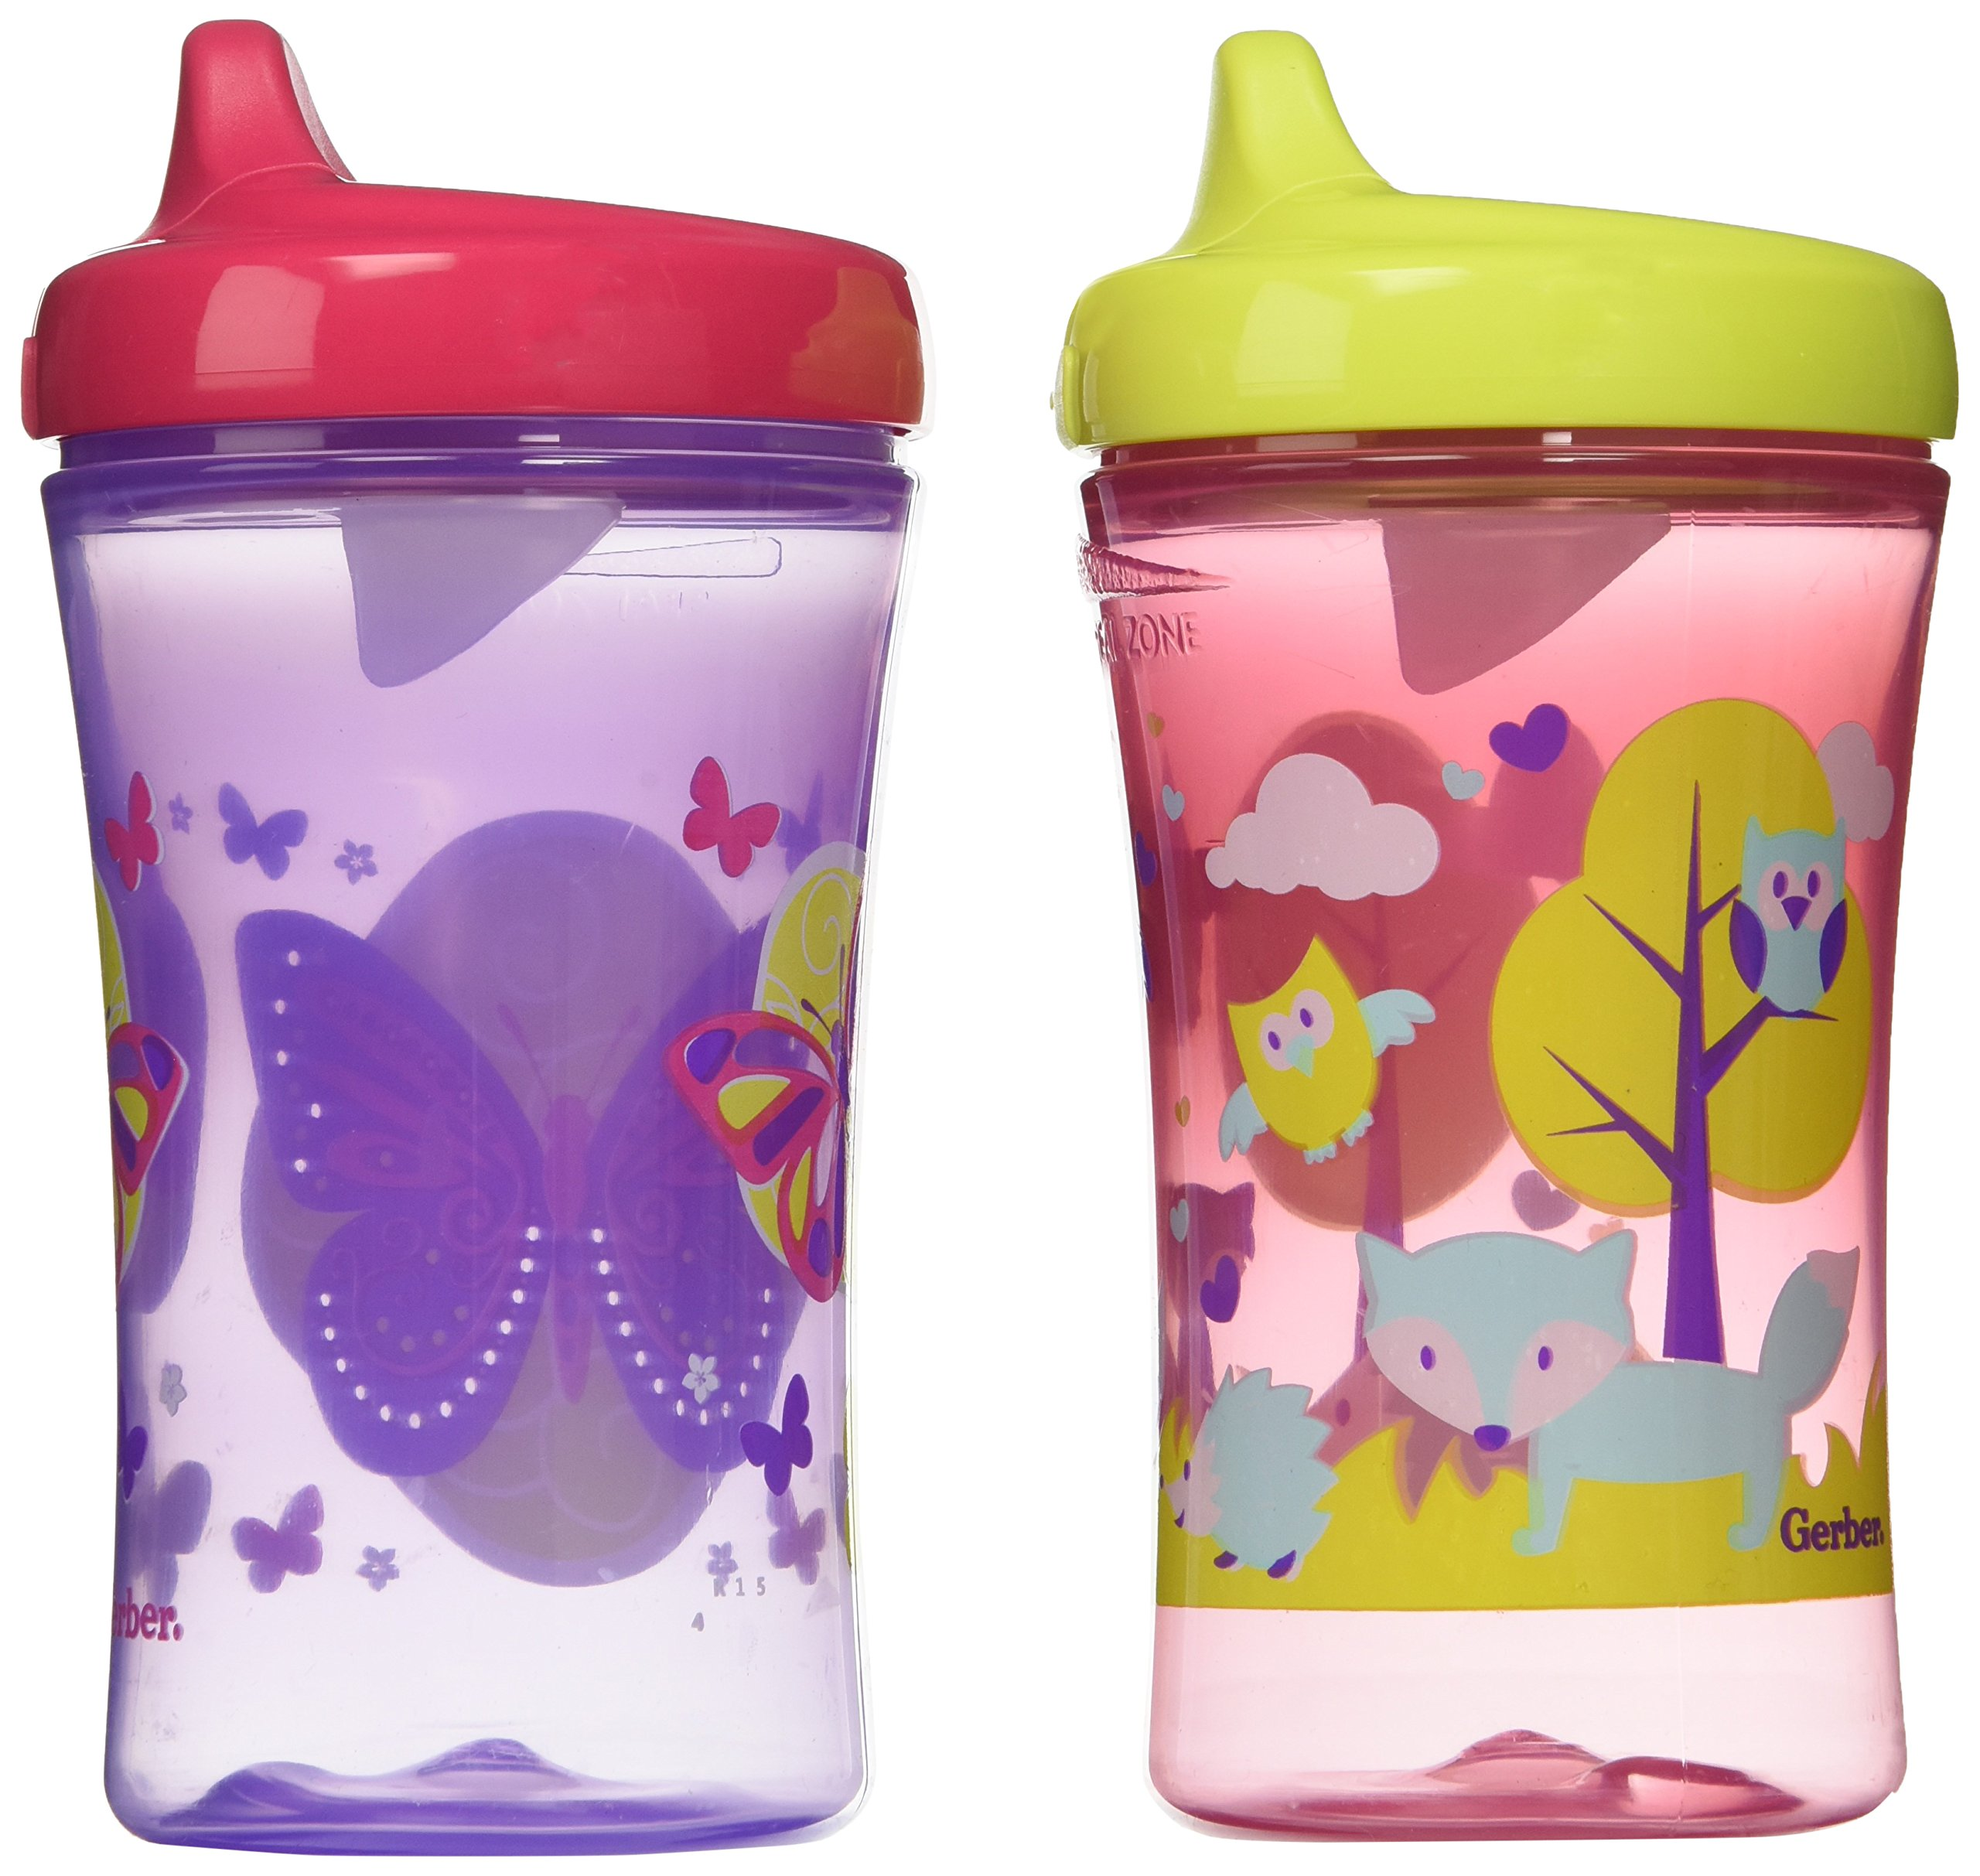 Nuk First Essentials Hard Spout Sippy Cup in Assorted Colors-2 Pack, 10-Ounce (Theme May Vary) by Nuk First Essentials